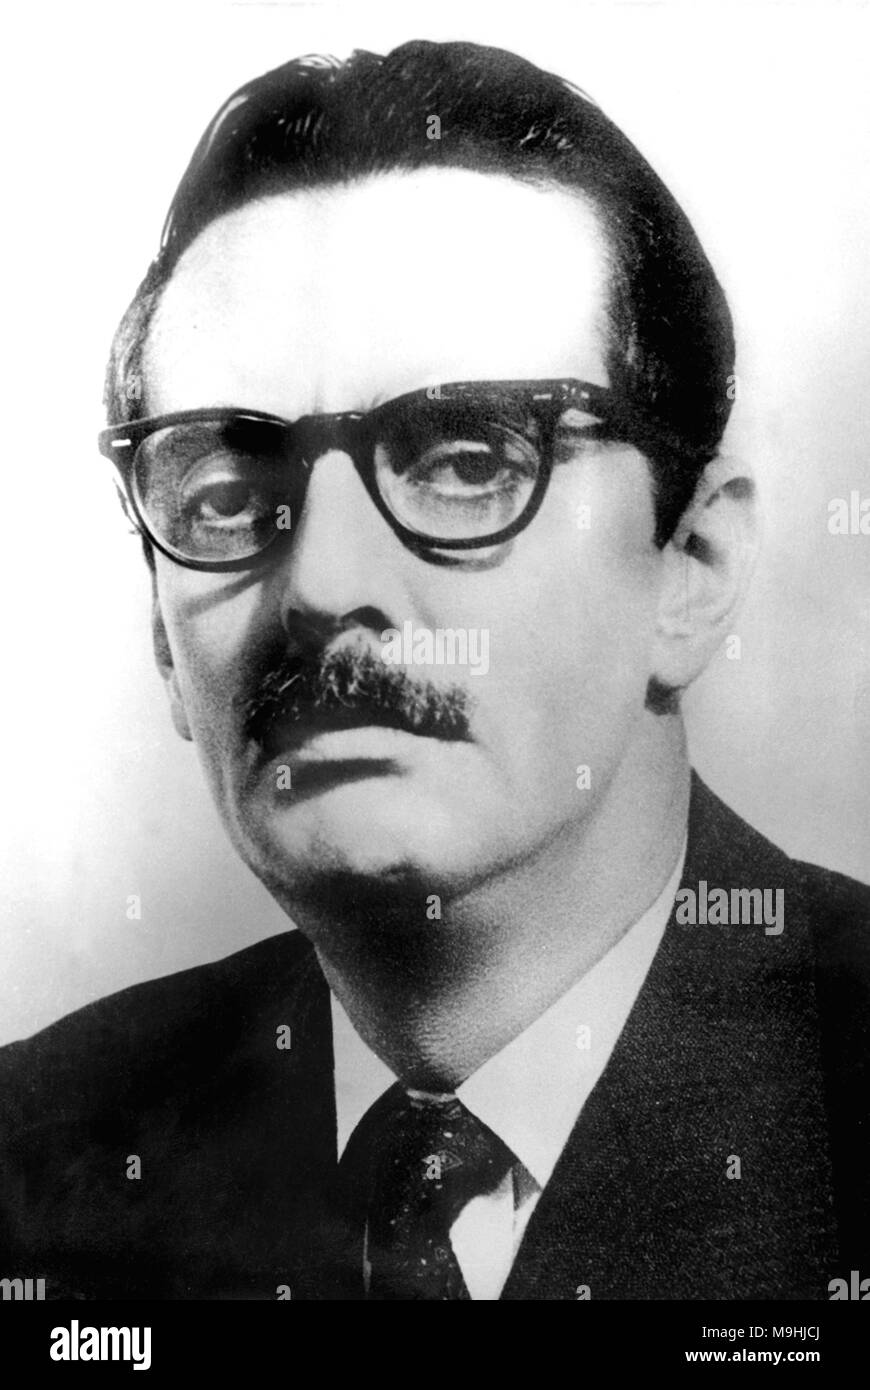 Jânio da Silva Quadros (1917 – 1992) Brazilian politician who served as 22nd President of Brazil from 31 January to 25 August 1961, when he resigned from office. - Stock Image